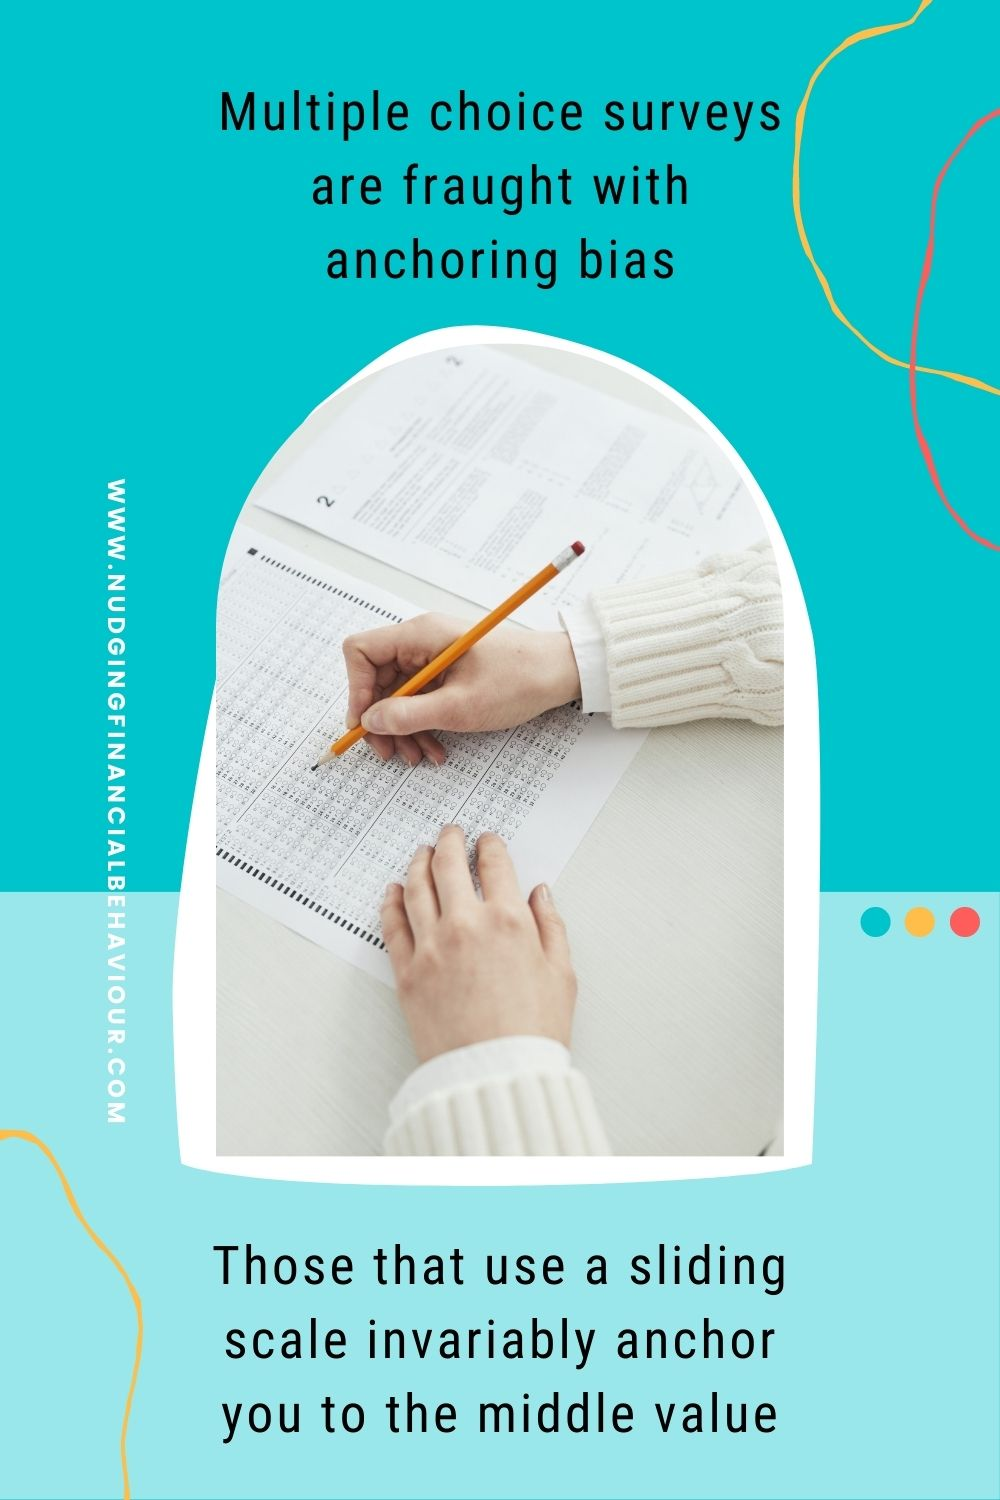 Anchoring effect examples